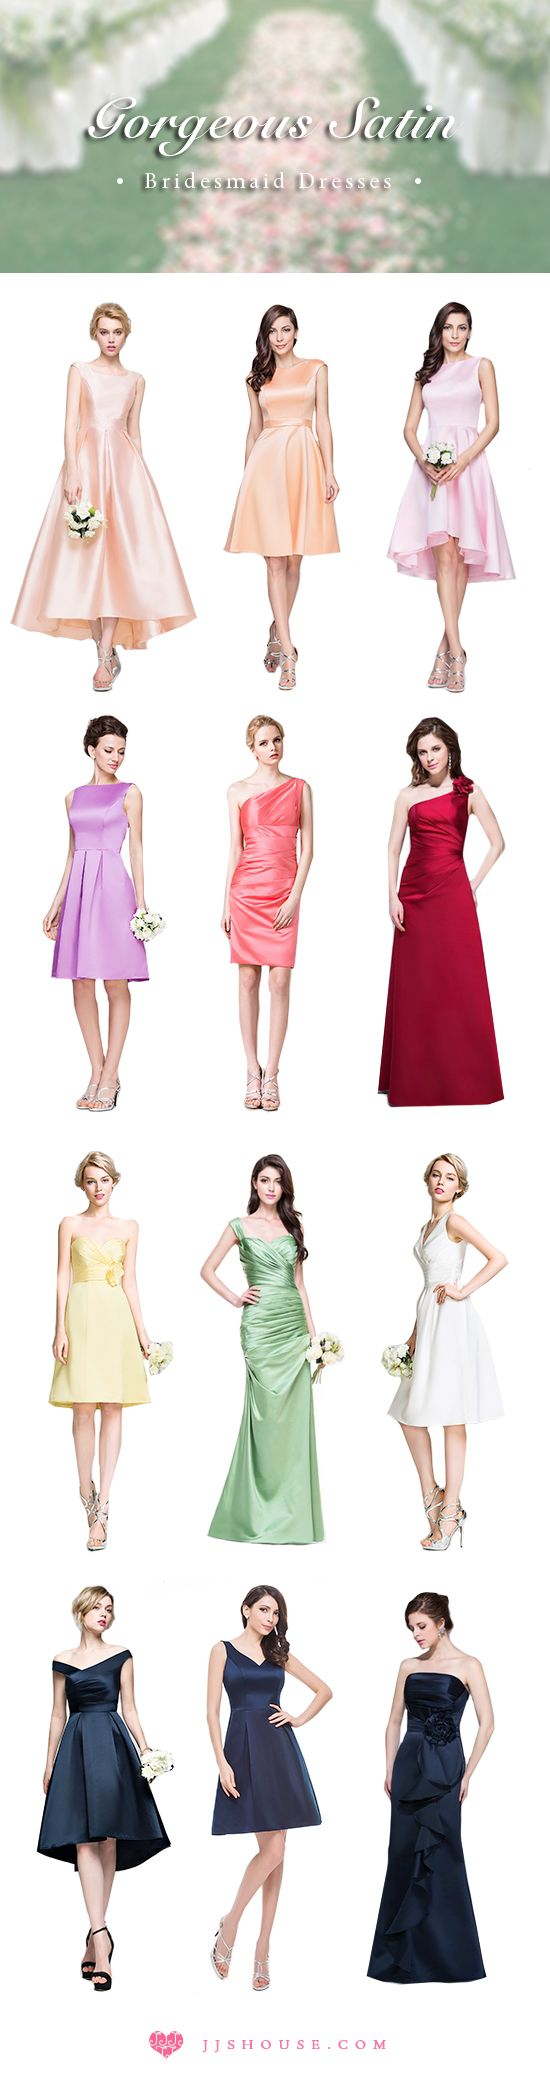 Gorgeous satin bridesmaid dresses collection. #bridesmaiddresses